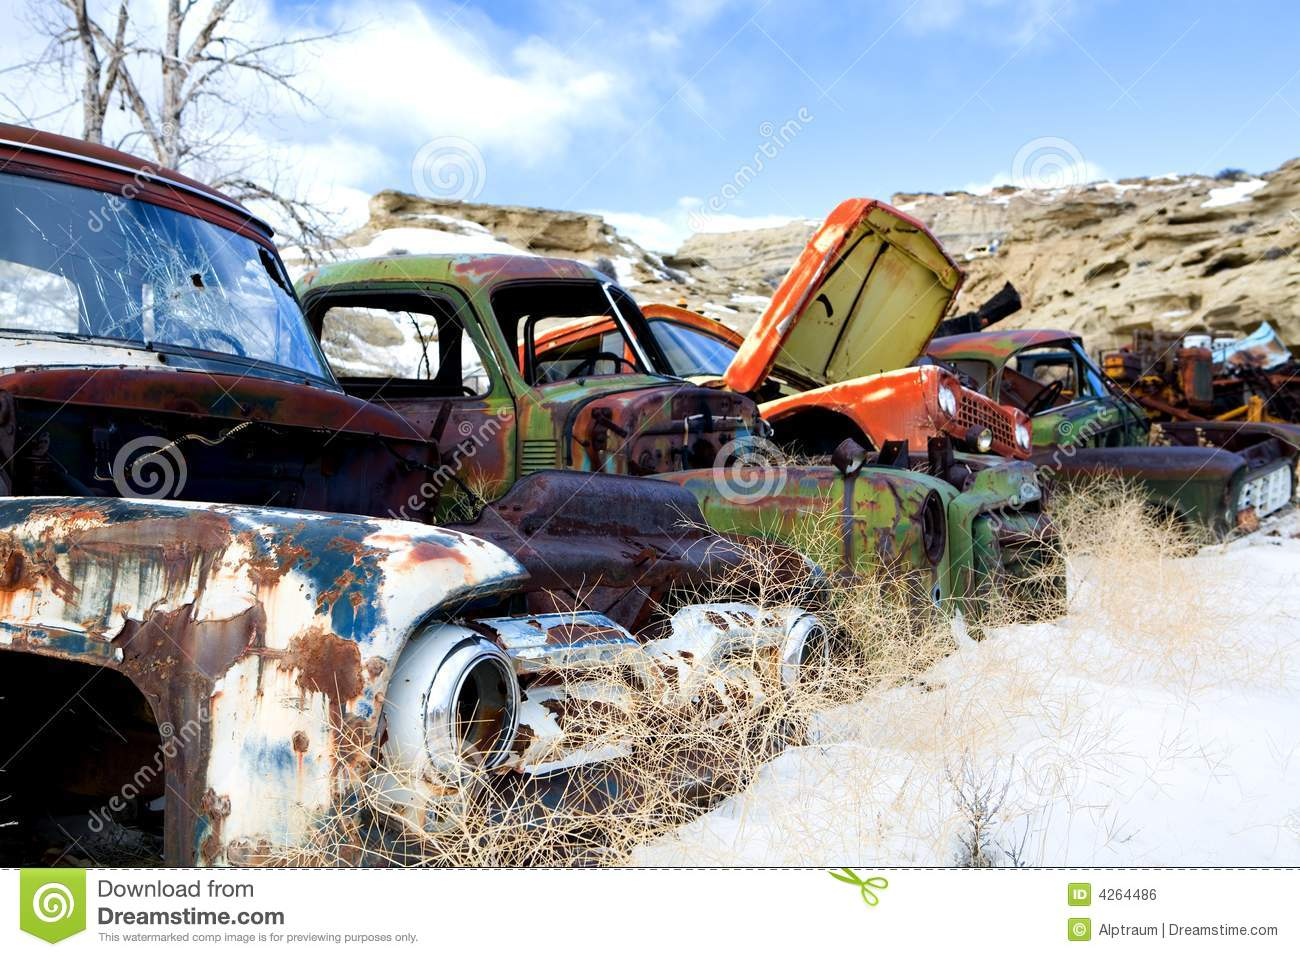 alte autos am junkyard stockfoto bild von brach rostig 4264486. Black Bedroom Furniture Sets. Home Design Ideas